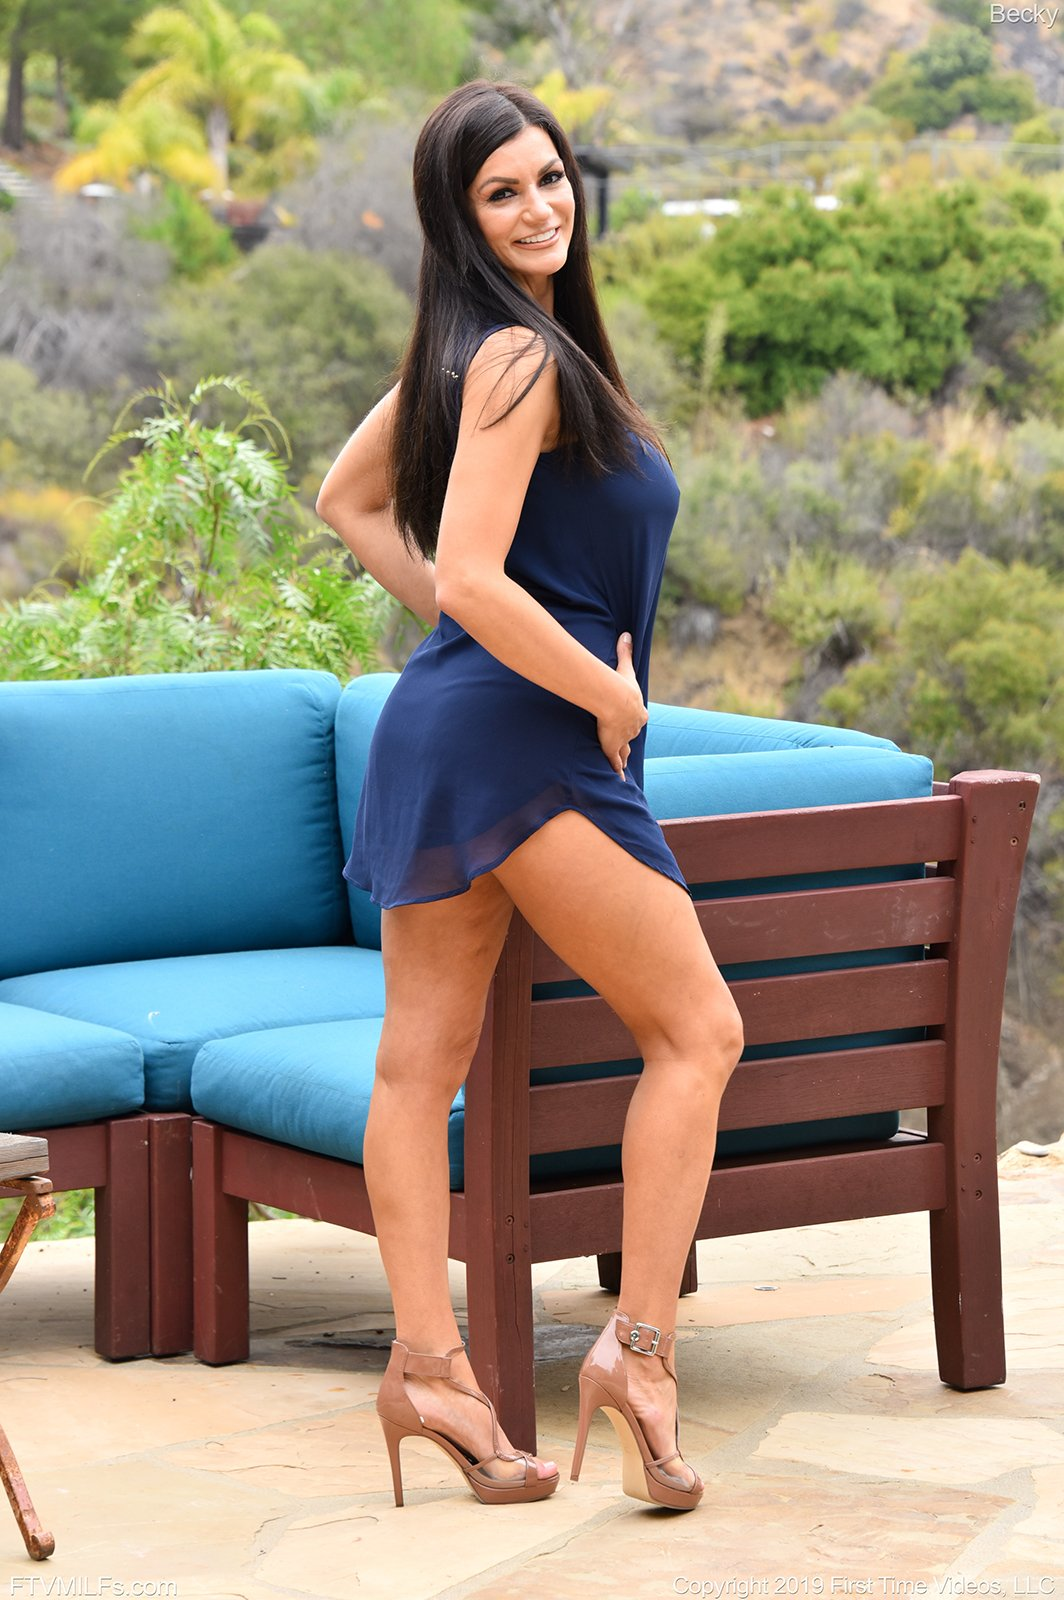 Dark-haired beauty in a blue dress bends over to show off